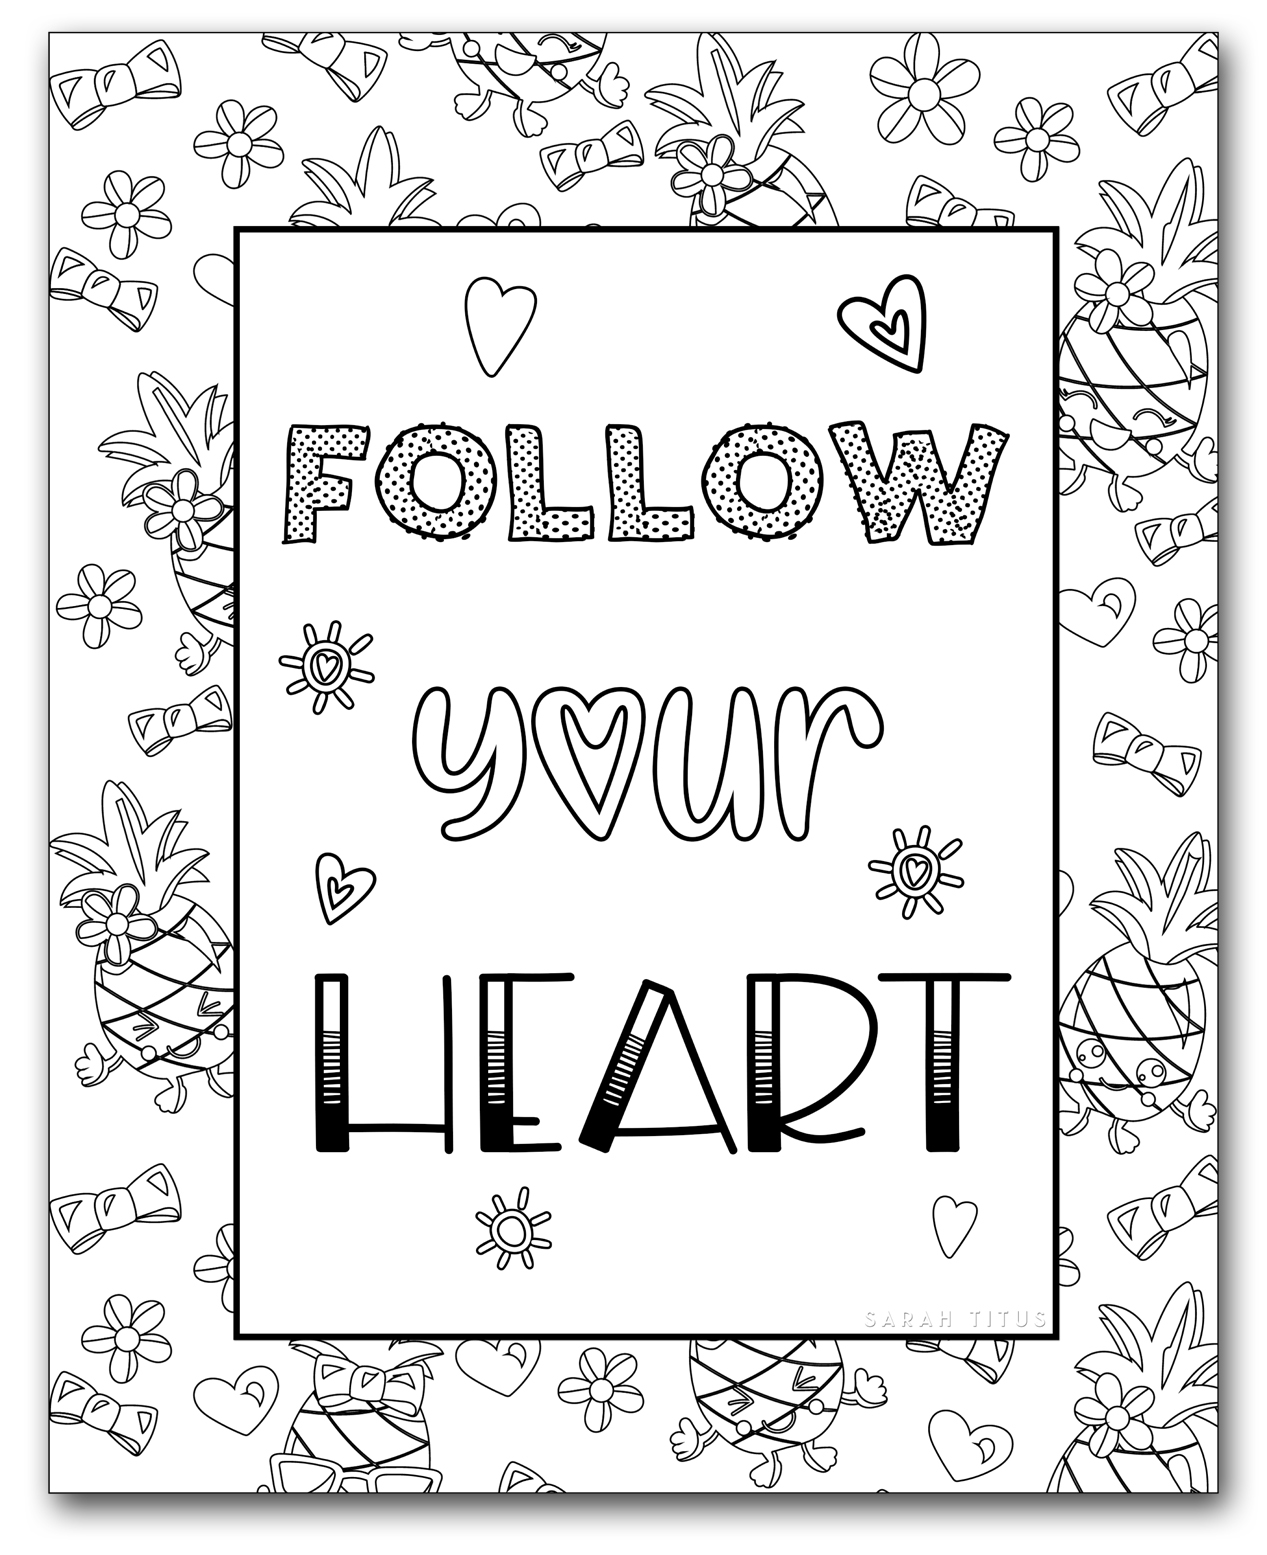 colering pages for girls girls coloring pages z31 girls for pages colering